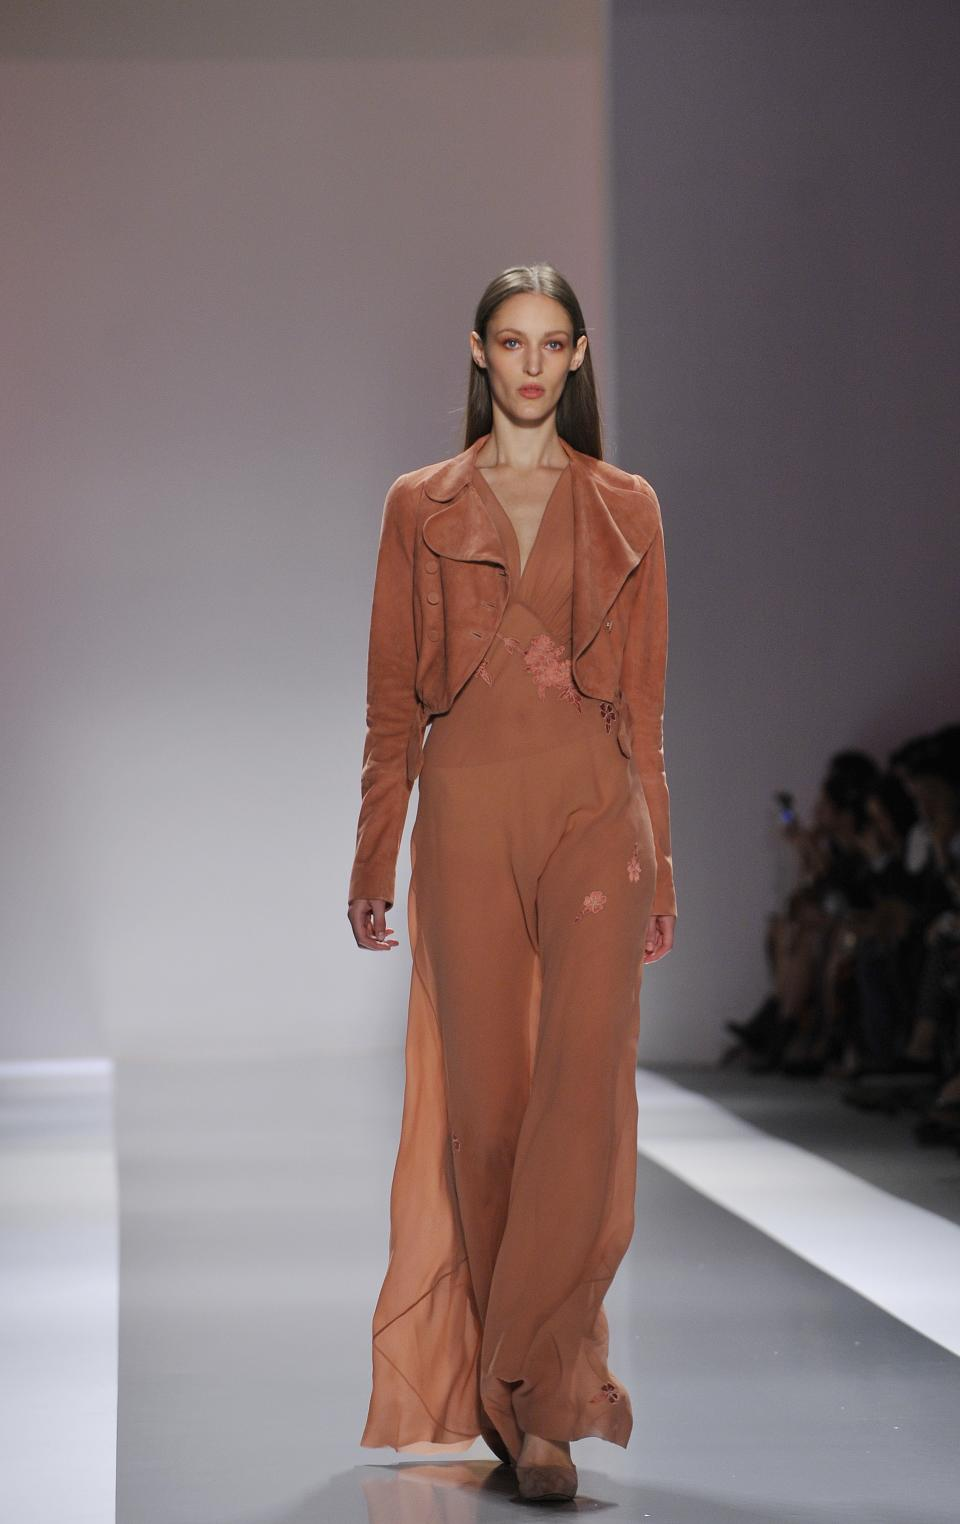 The Jill Stuart Spring 2013 collection is modeled during Fashion Week in New York, Saturday Sept 8, 2012. (AP Photo/Stephen Chernin)